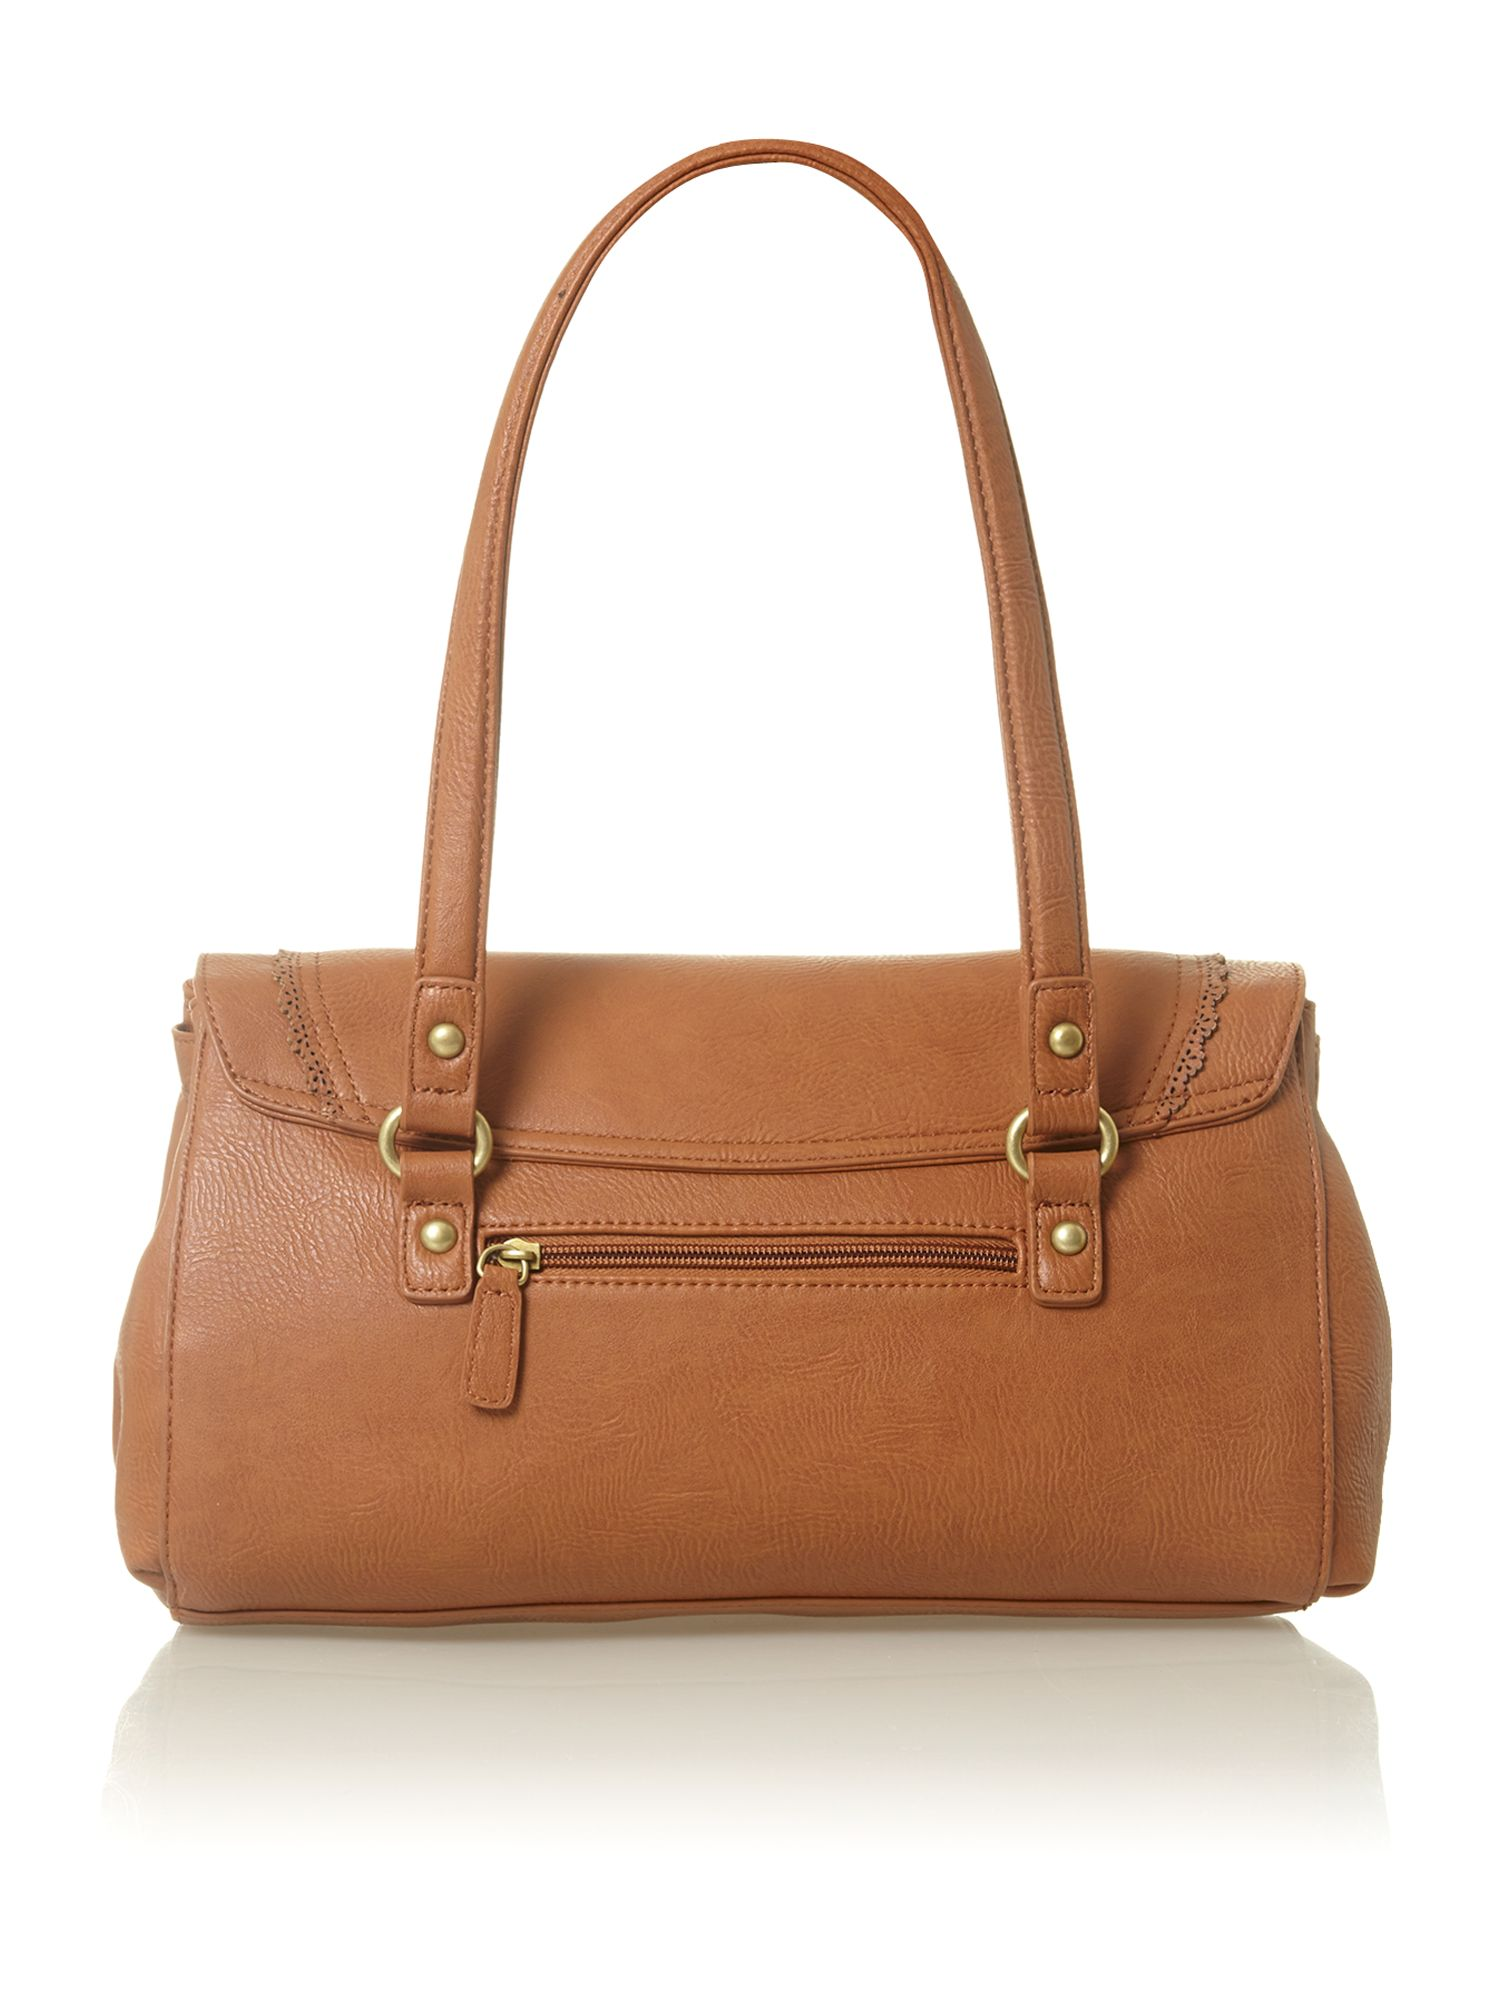 Koper brown tote bag